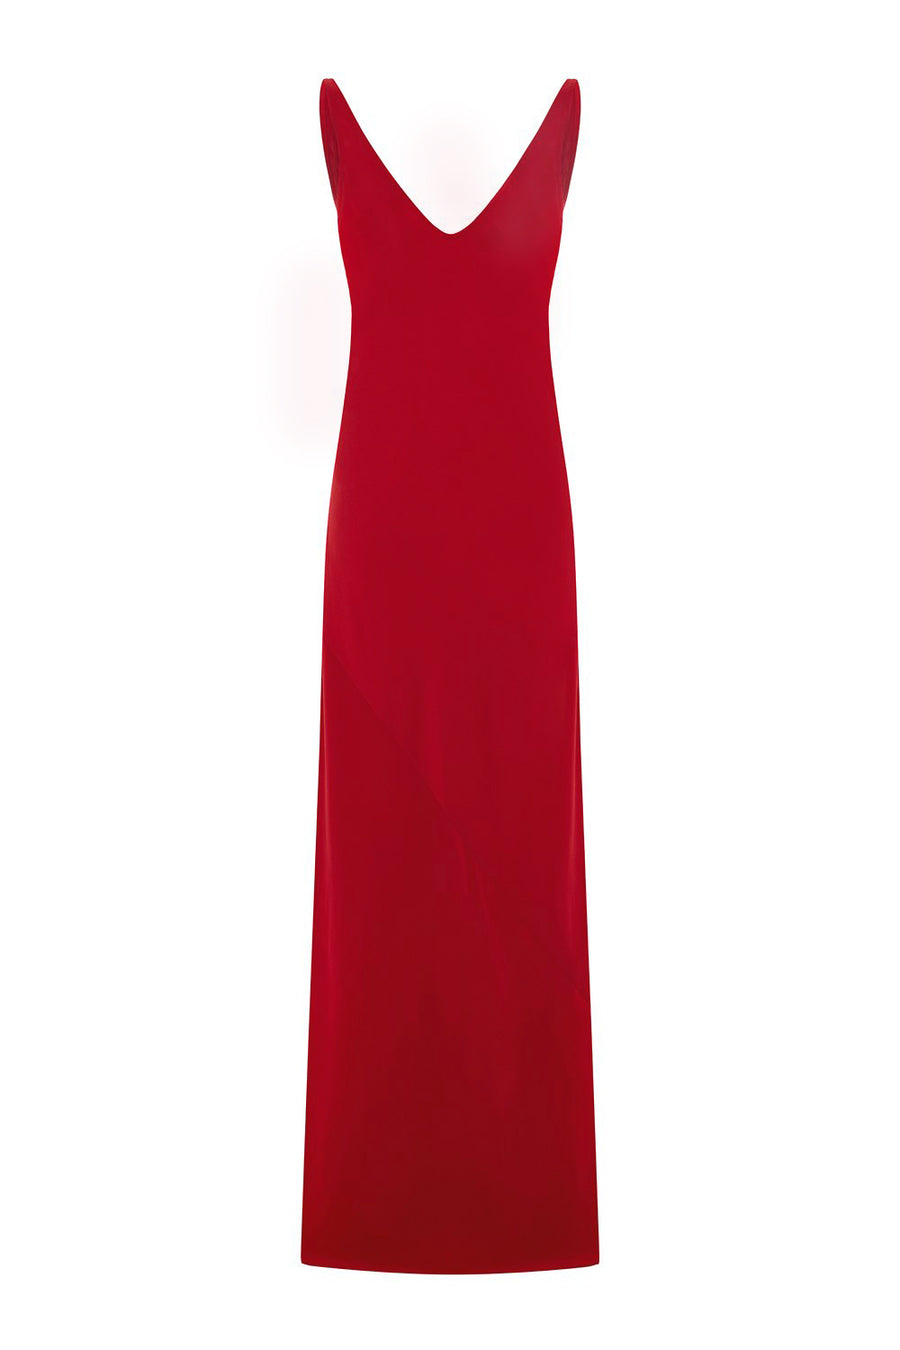 The Cannes Do | Vamp Red (4684643369041)